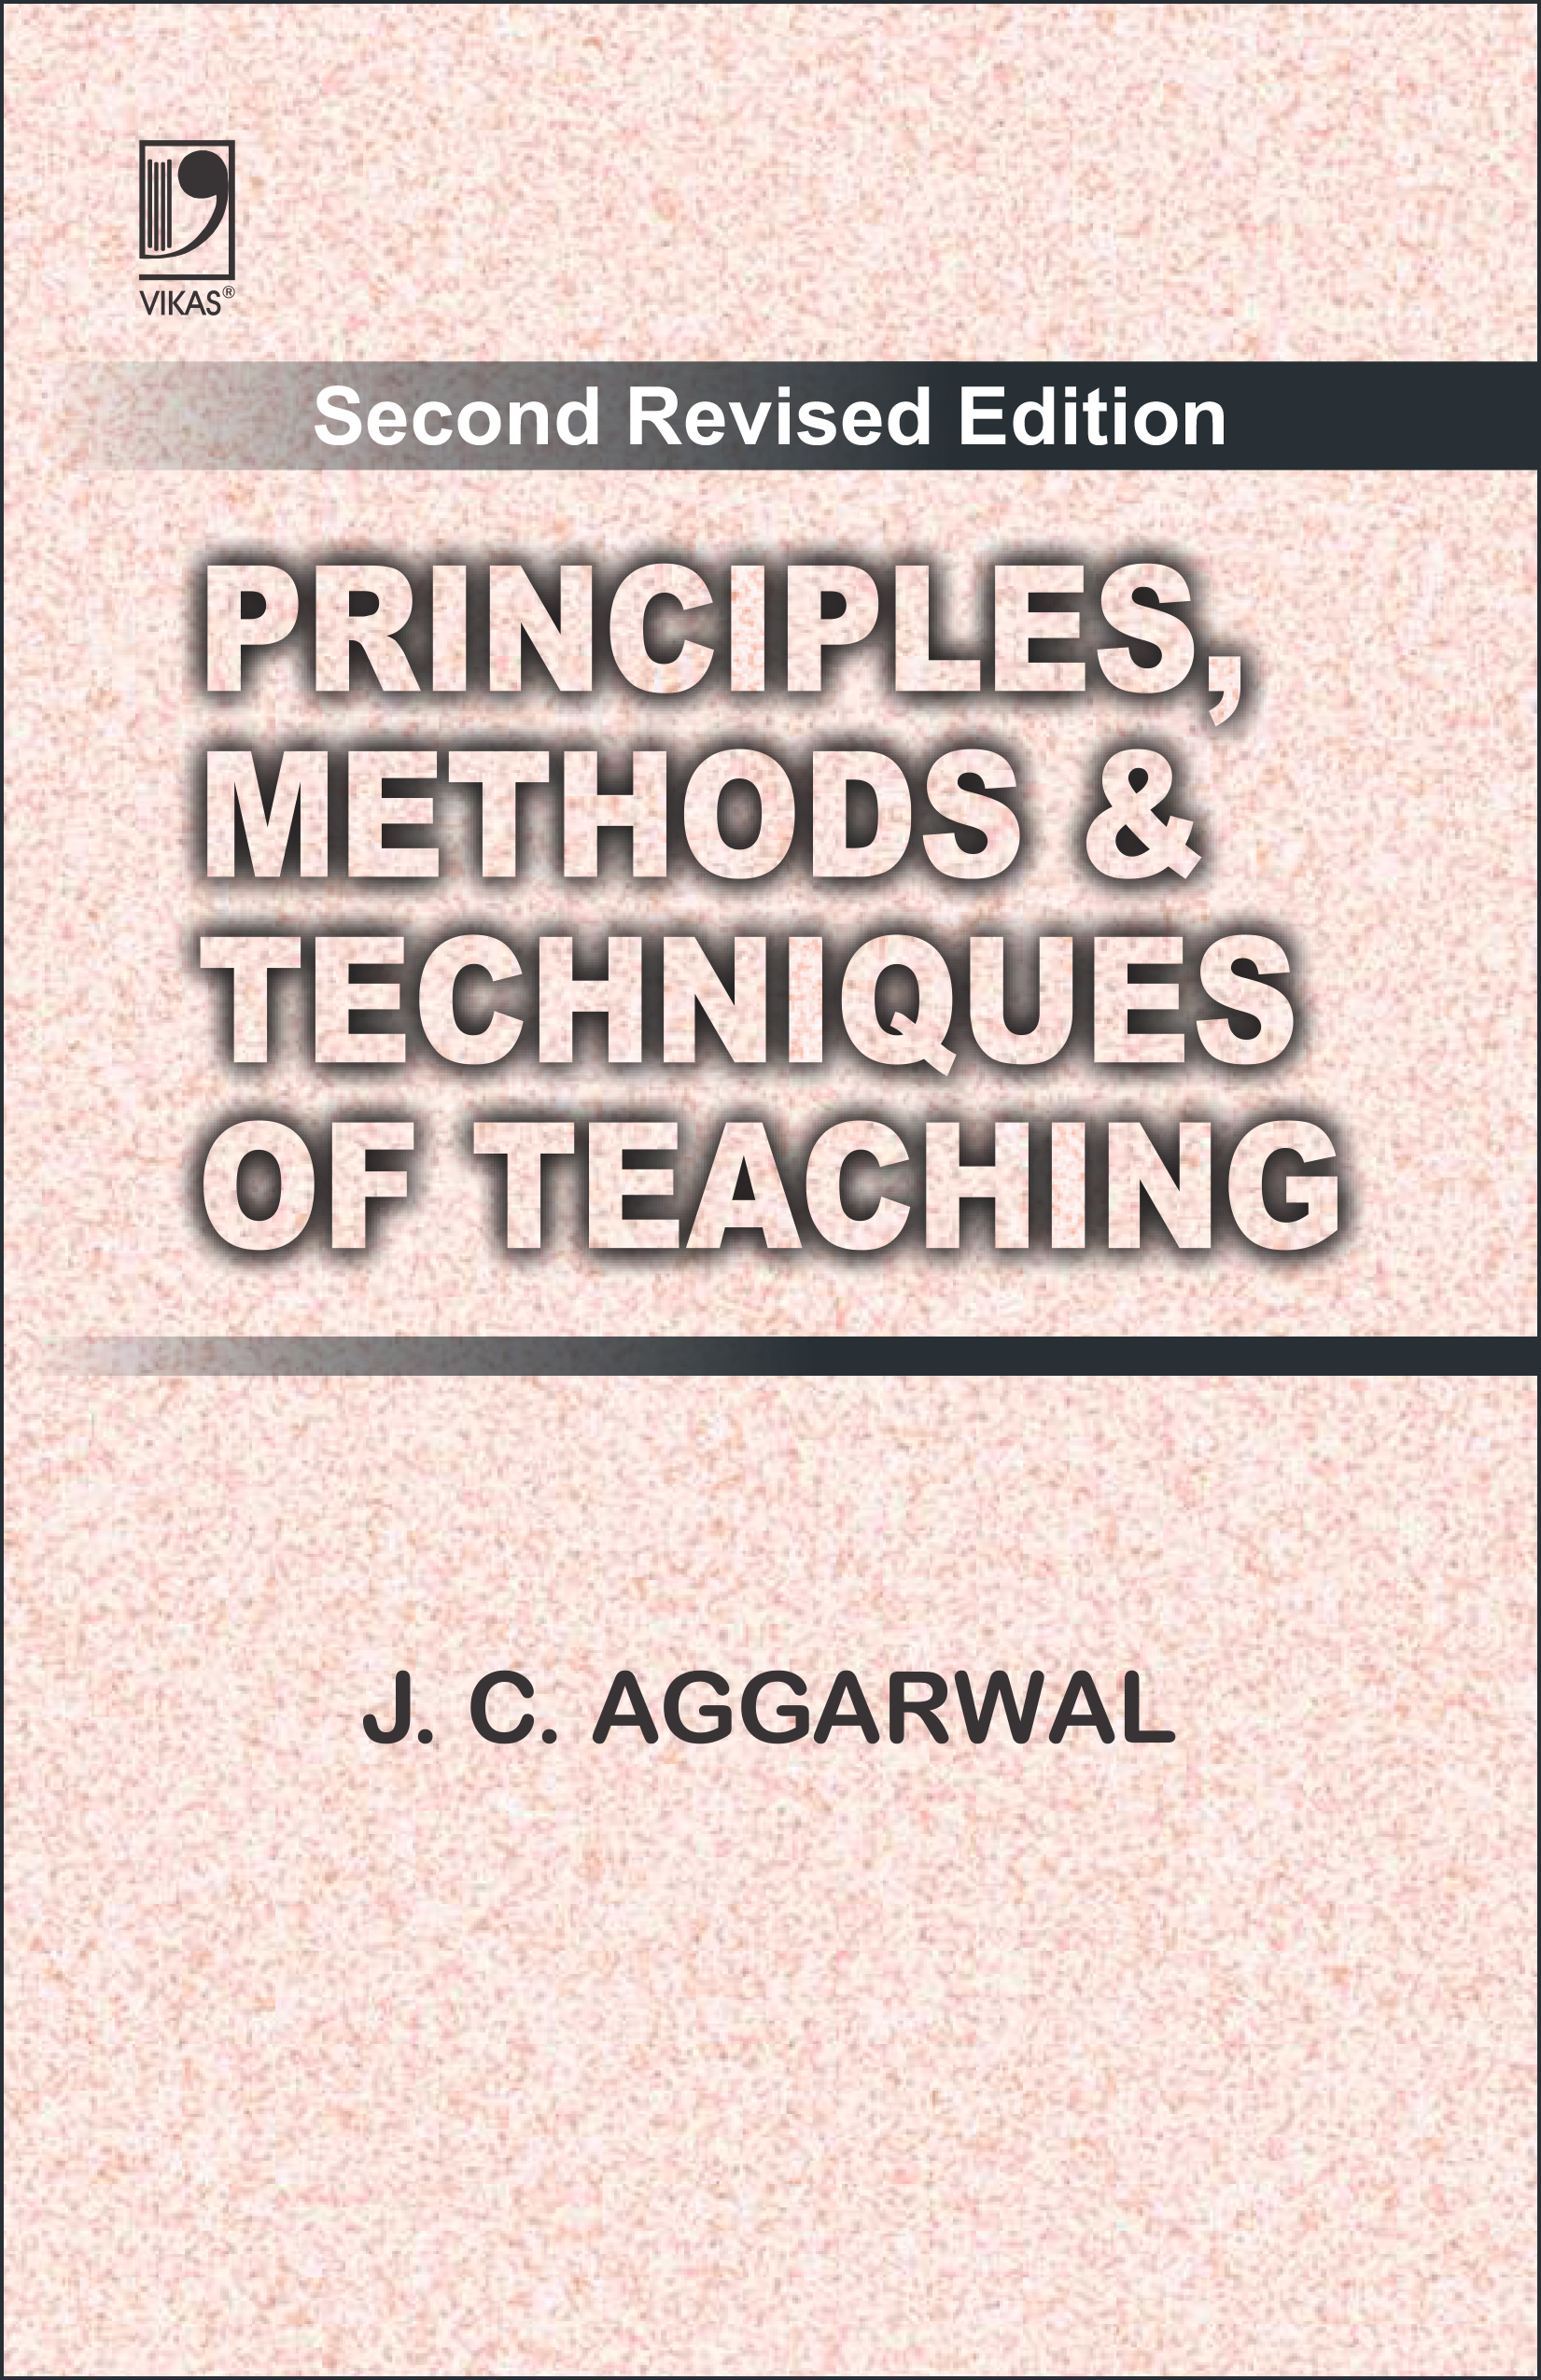 Principles, Methods & Techniques of Teaching, 2/e